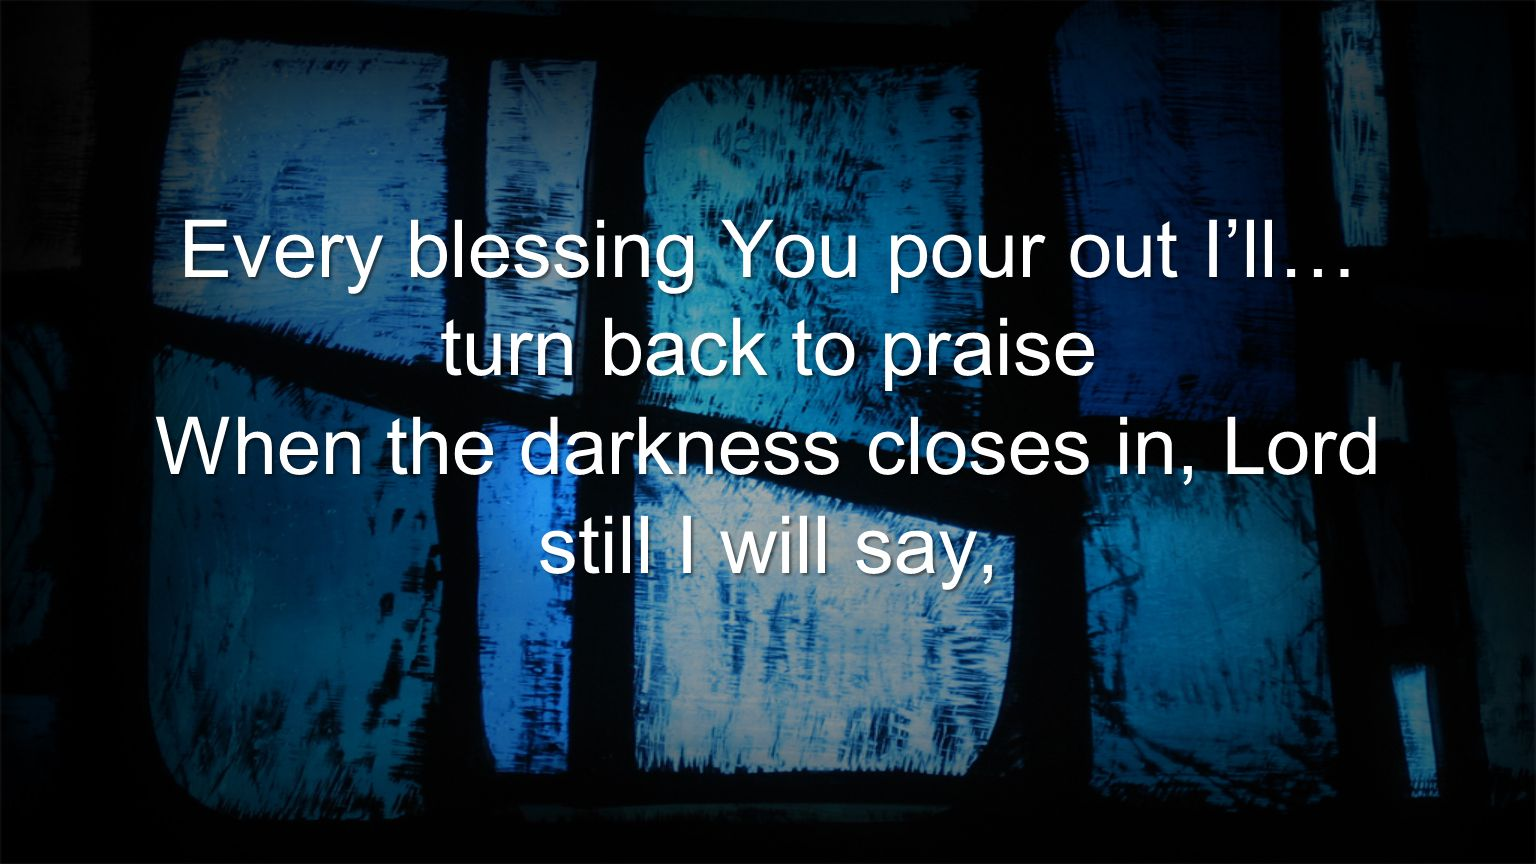 Every blessing You pour out I'll… turn back to praise